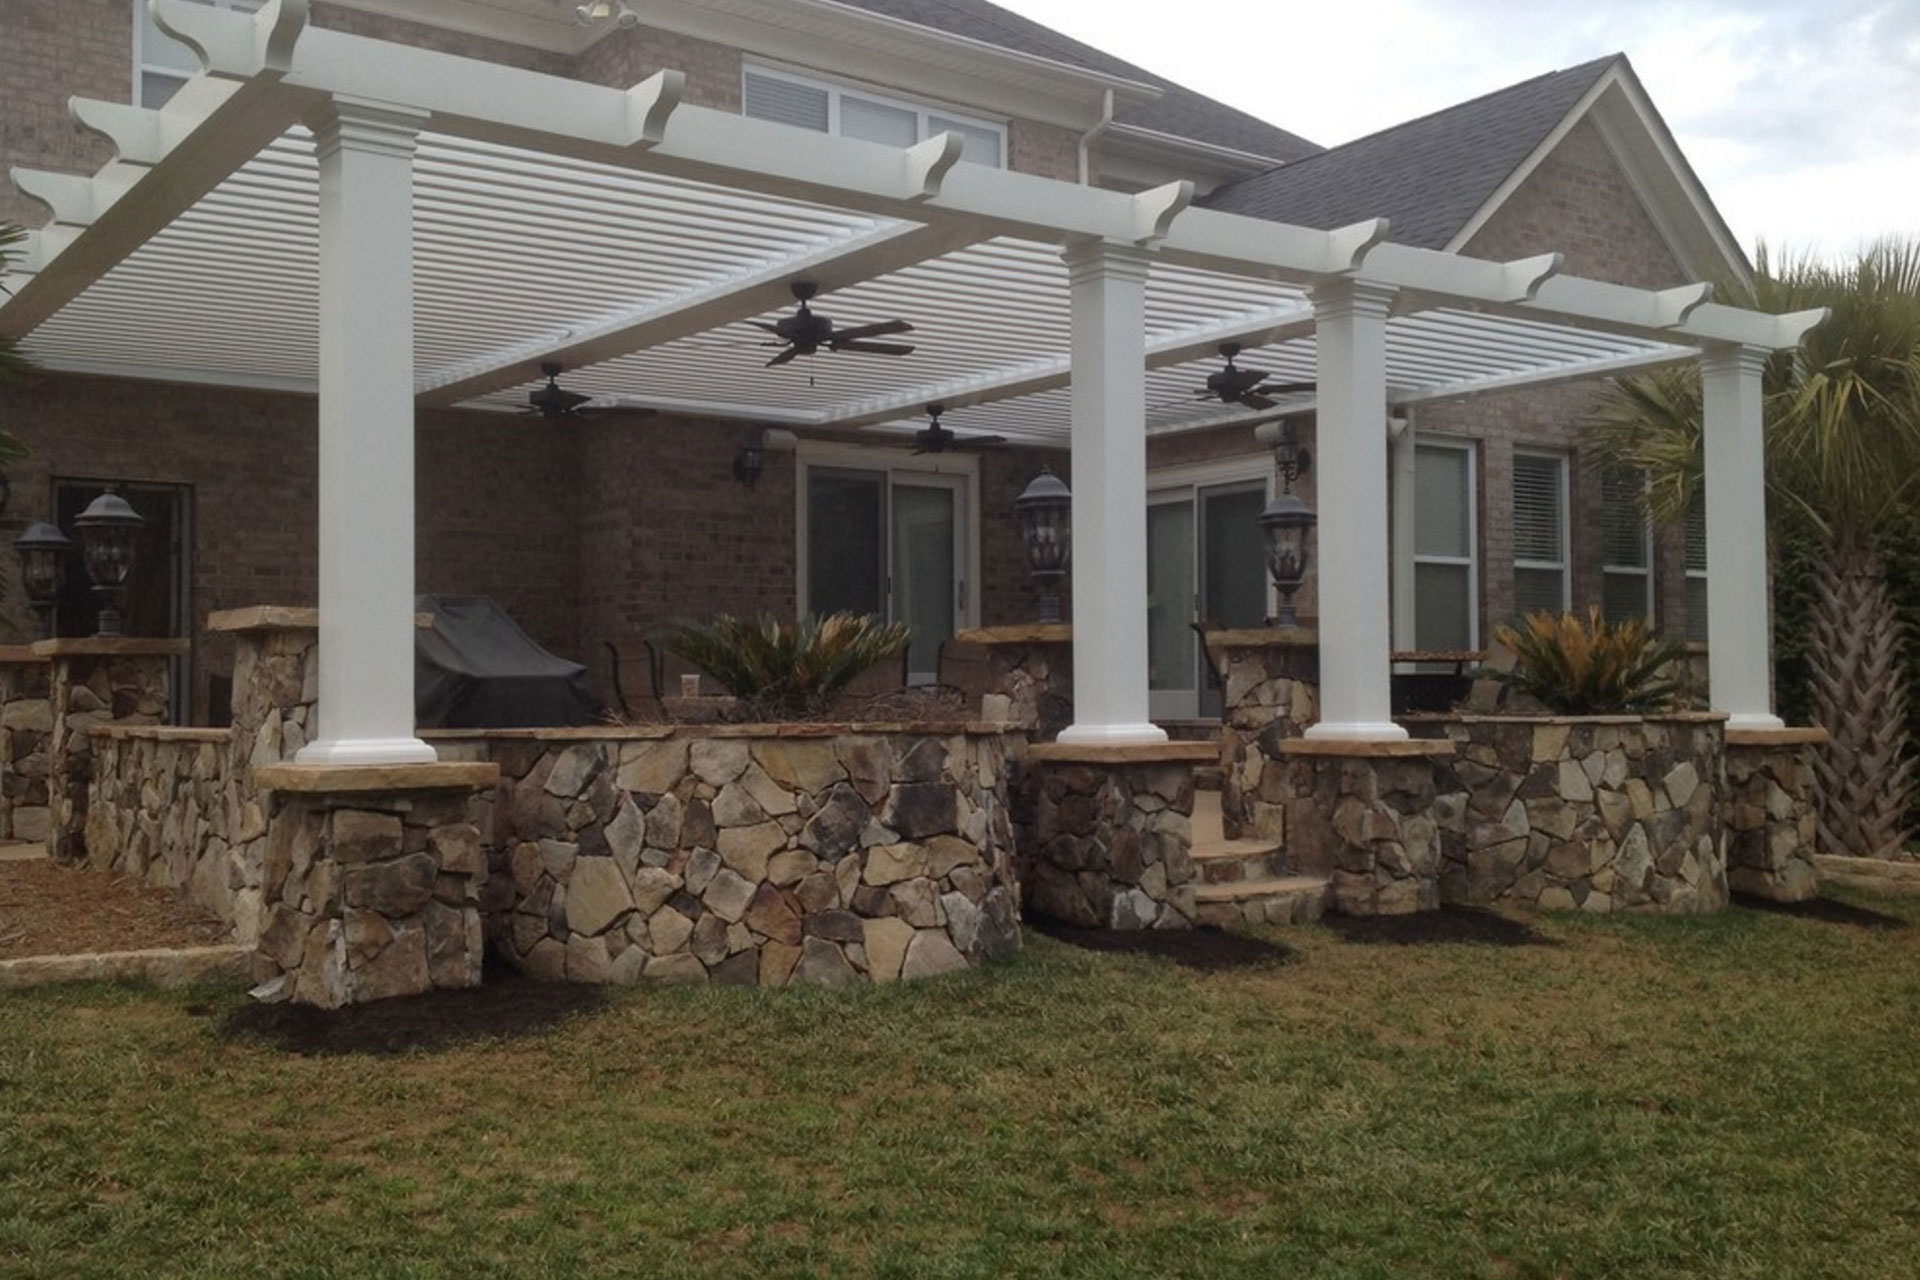 A ... & Pergola Roof Ideas: What You Need to Know | ShadeFX Canopies